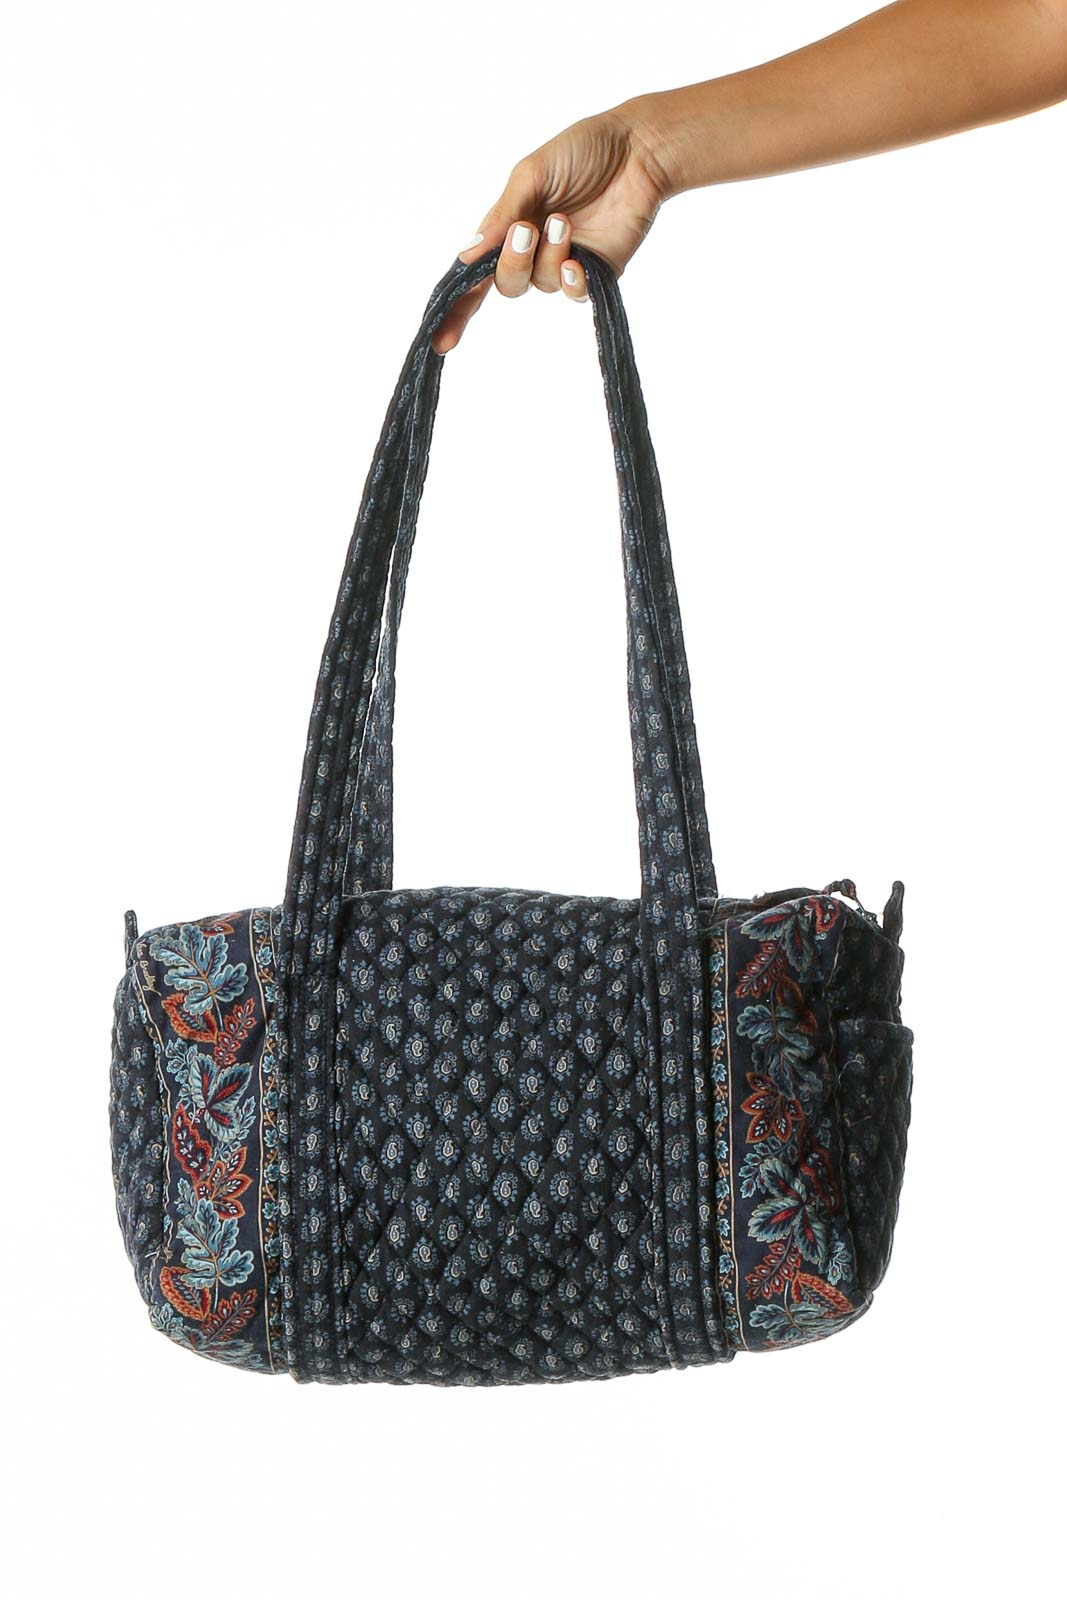 Blue Zippered Bag Front